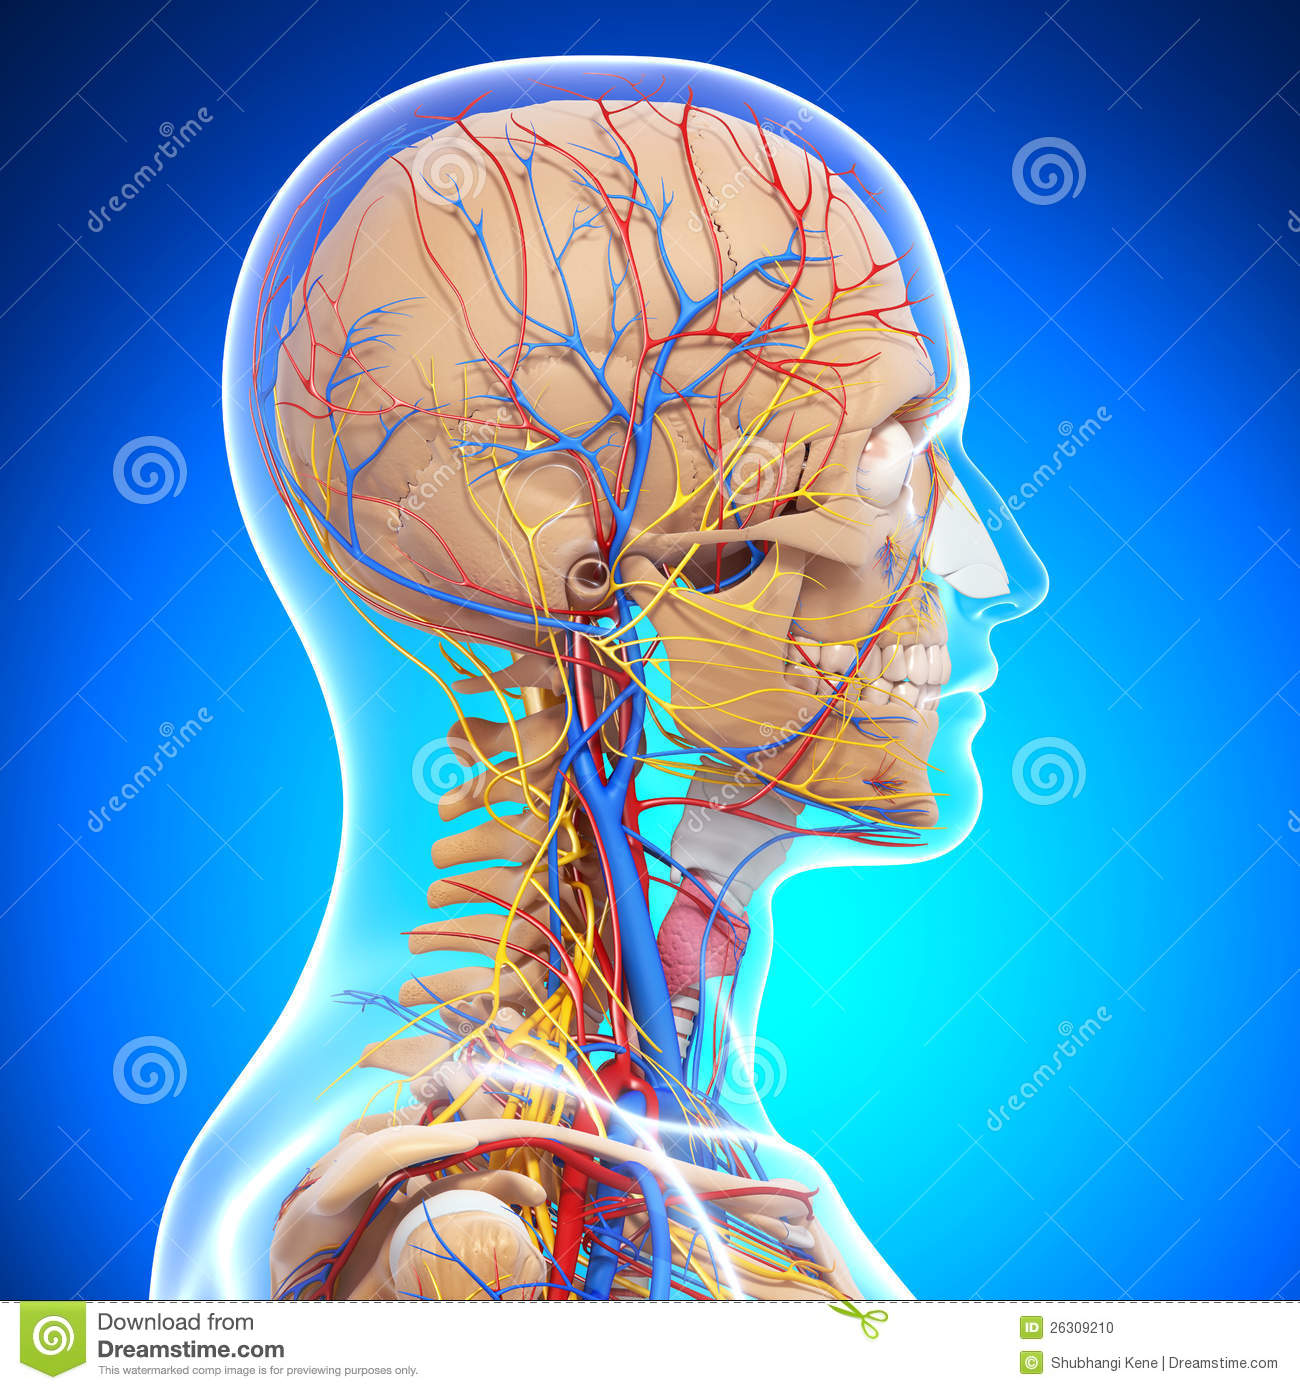 Labeled Nervous System Diagram also Full together with View further Details additionally Photo Stock Anatomie De Squelette De T C3 AAte Humaine Image26309210. on human brain circulatory system